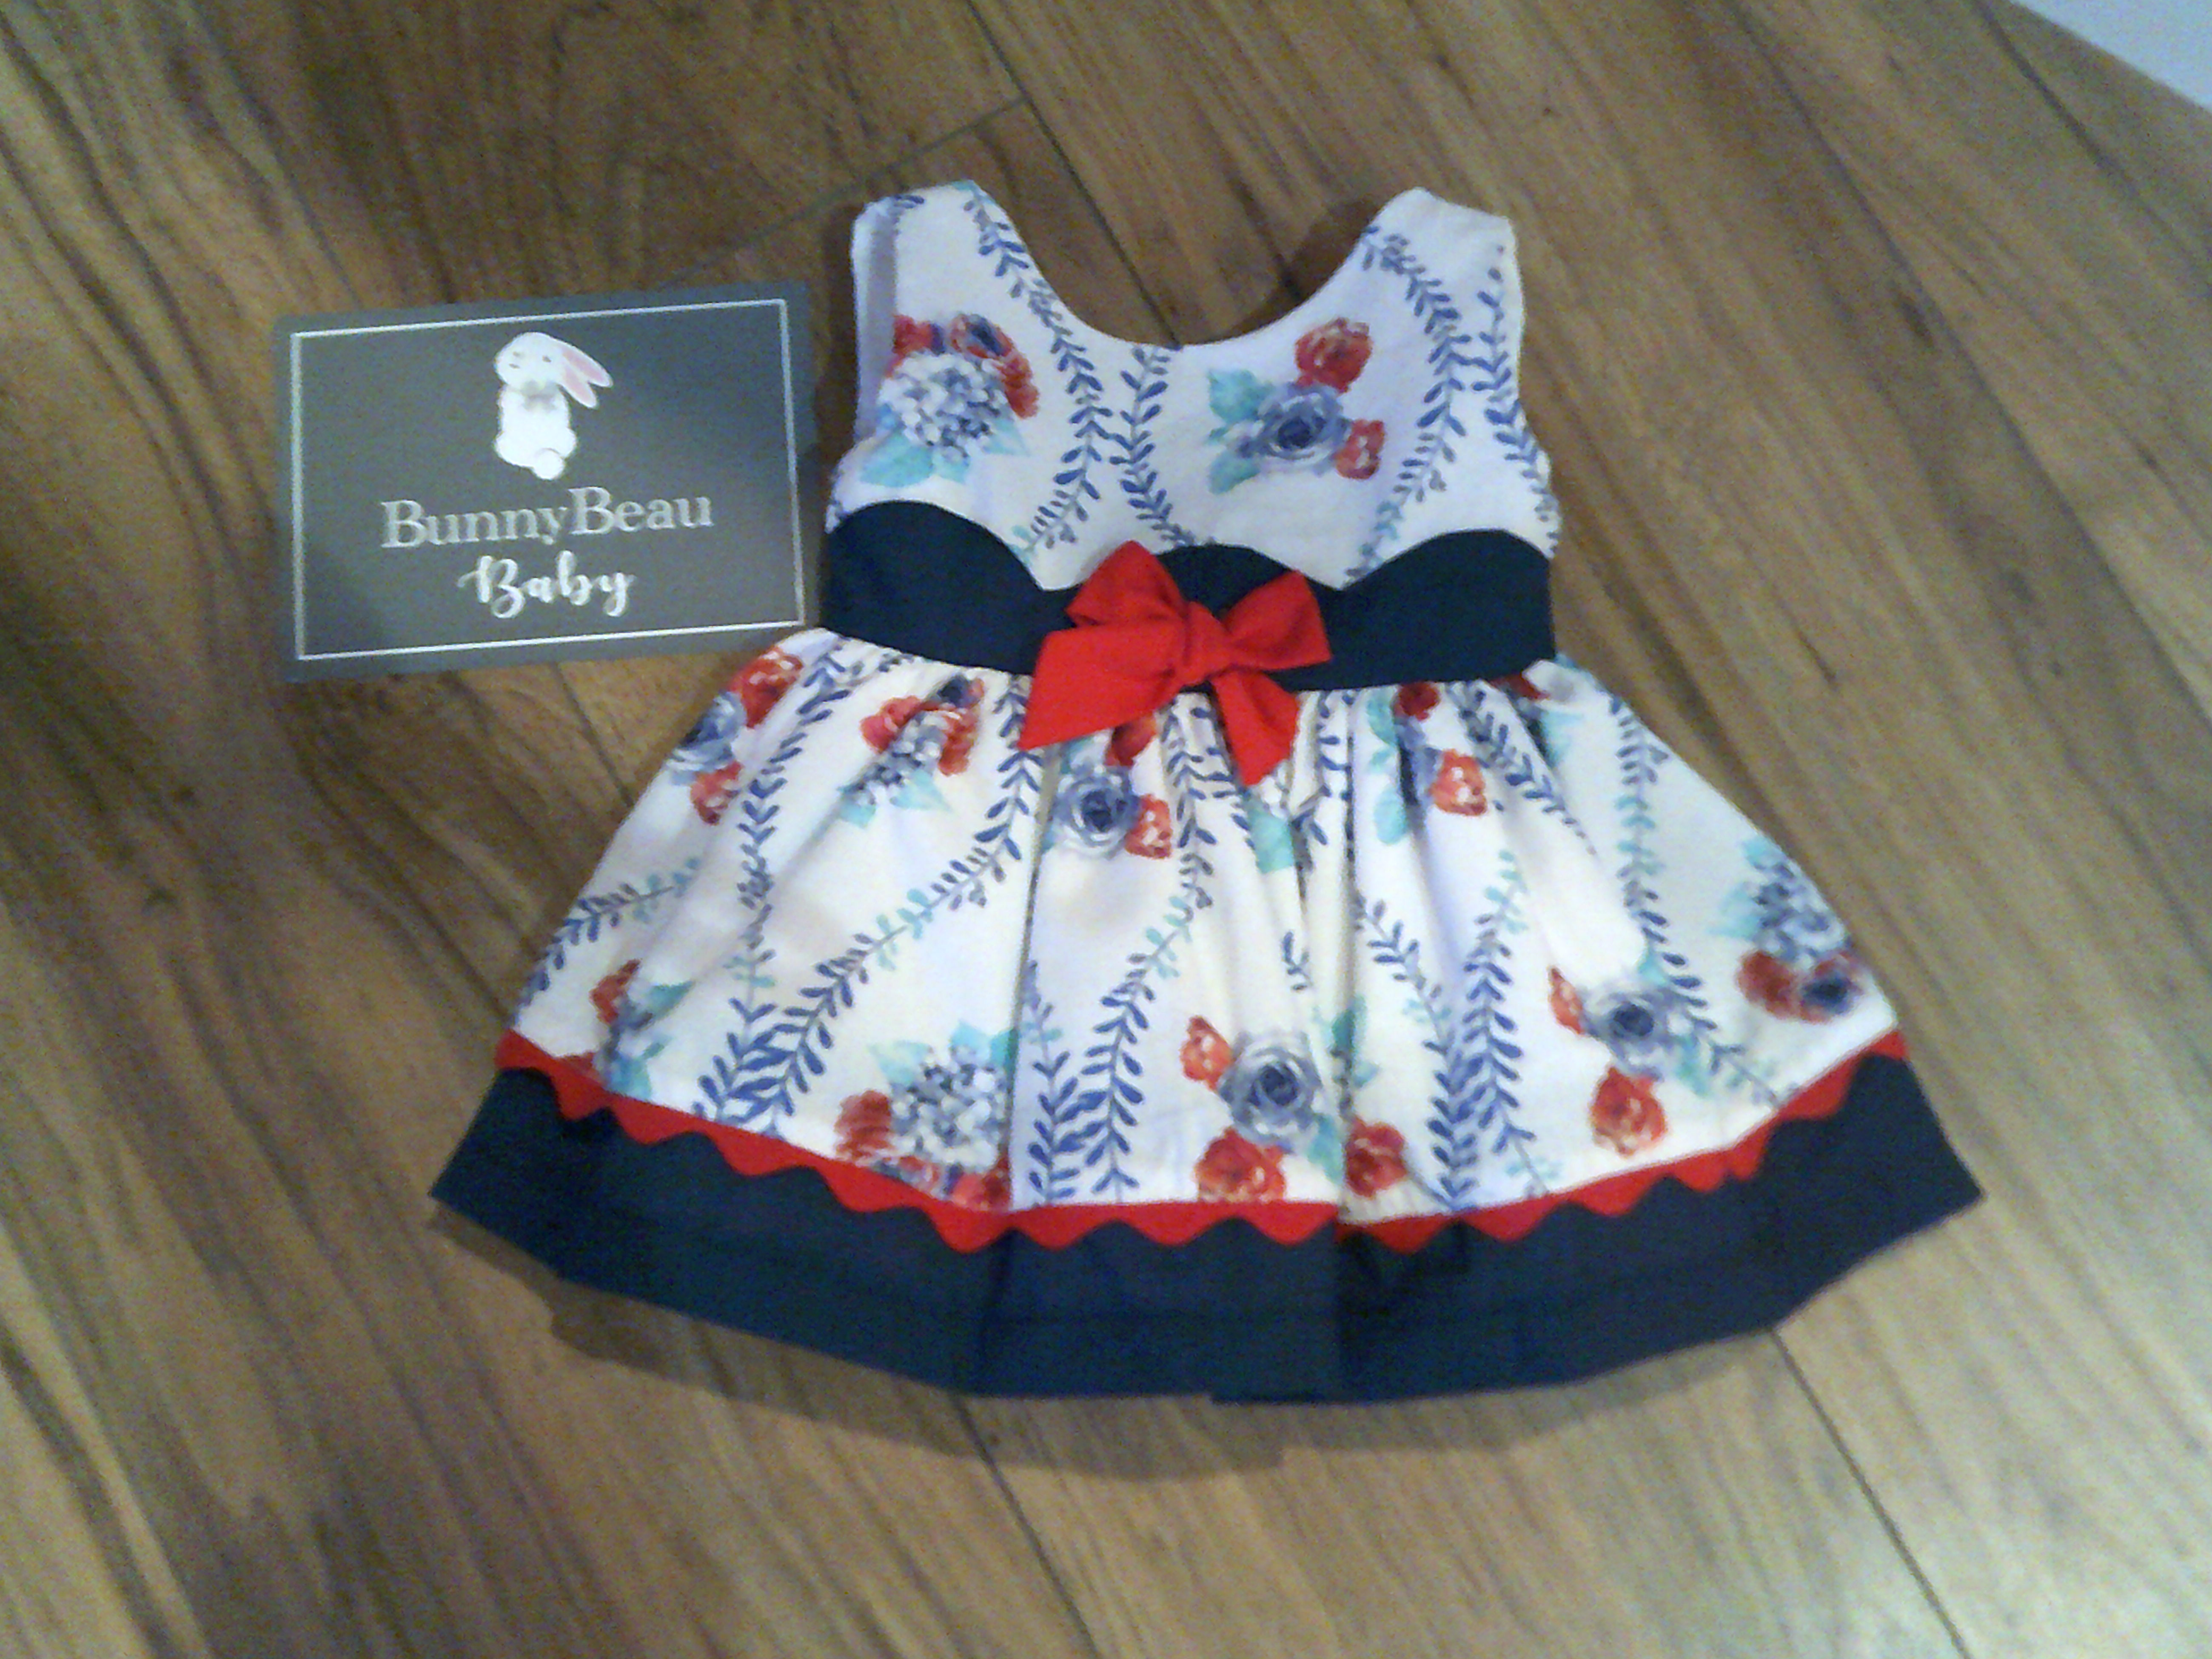 ALBER ROSES & VINES DRESS WITH NAVY TRIM Bunny Beau Baby Boutique